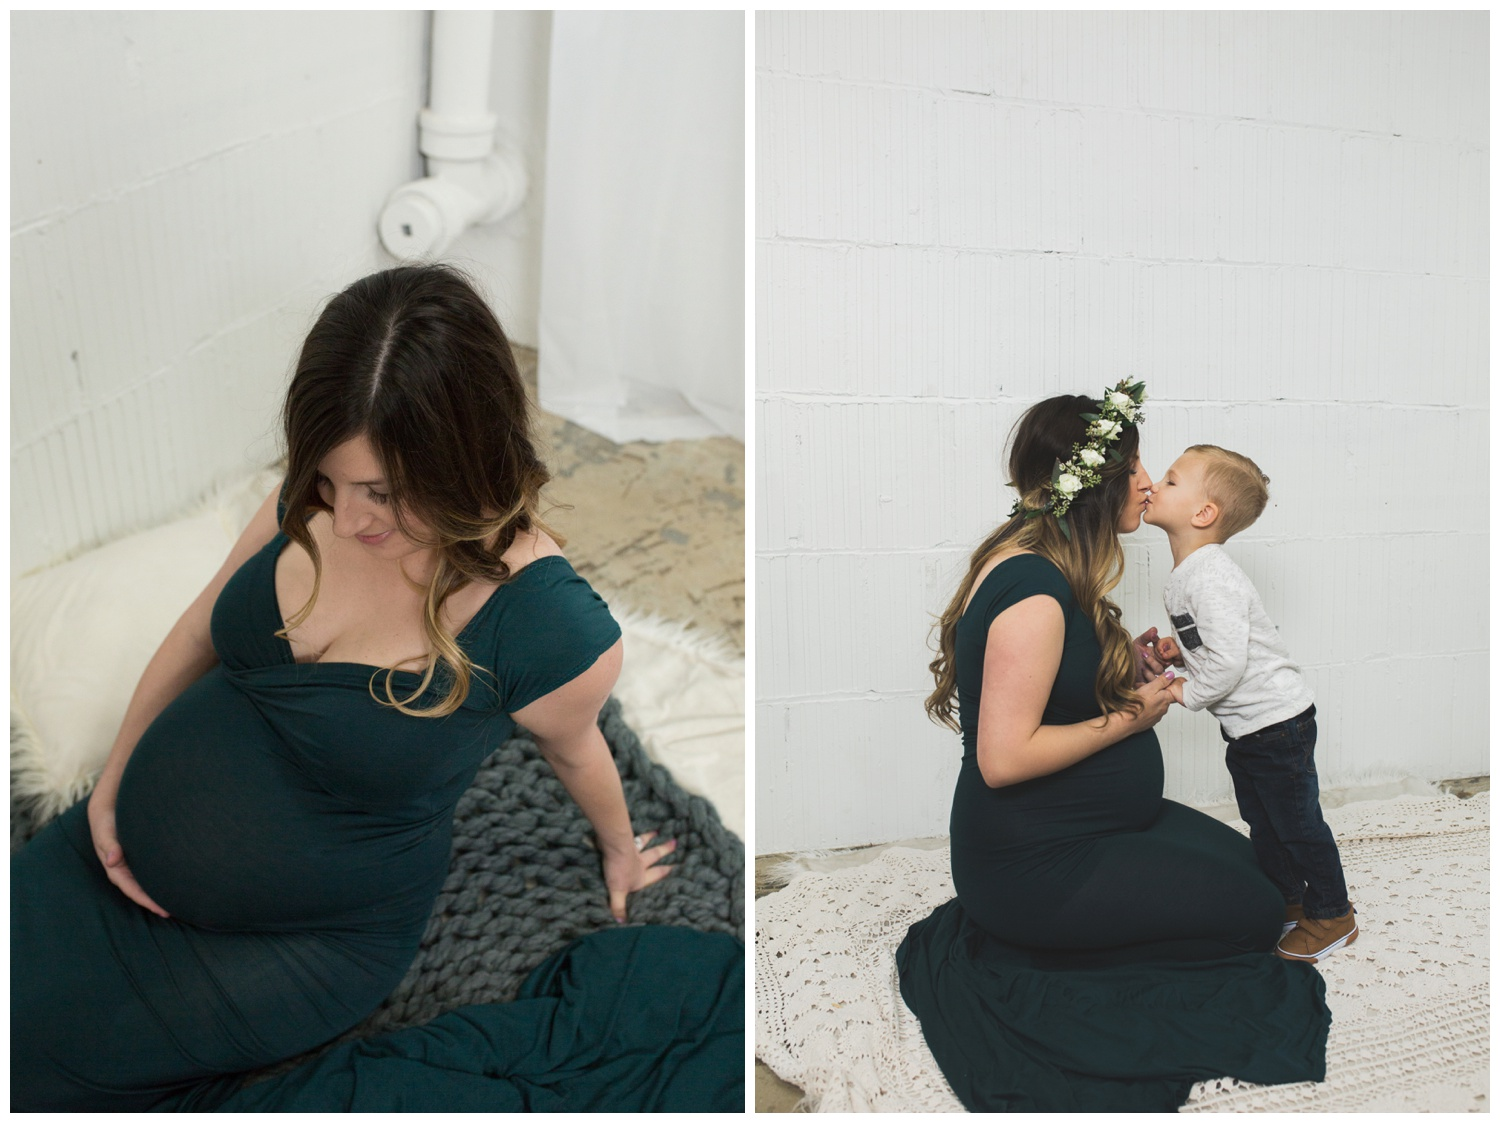 In studio reno maternity photographer location